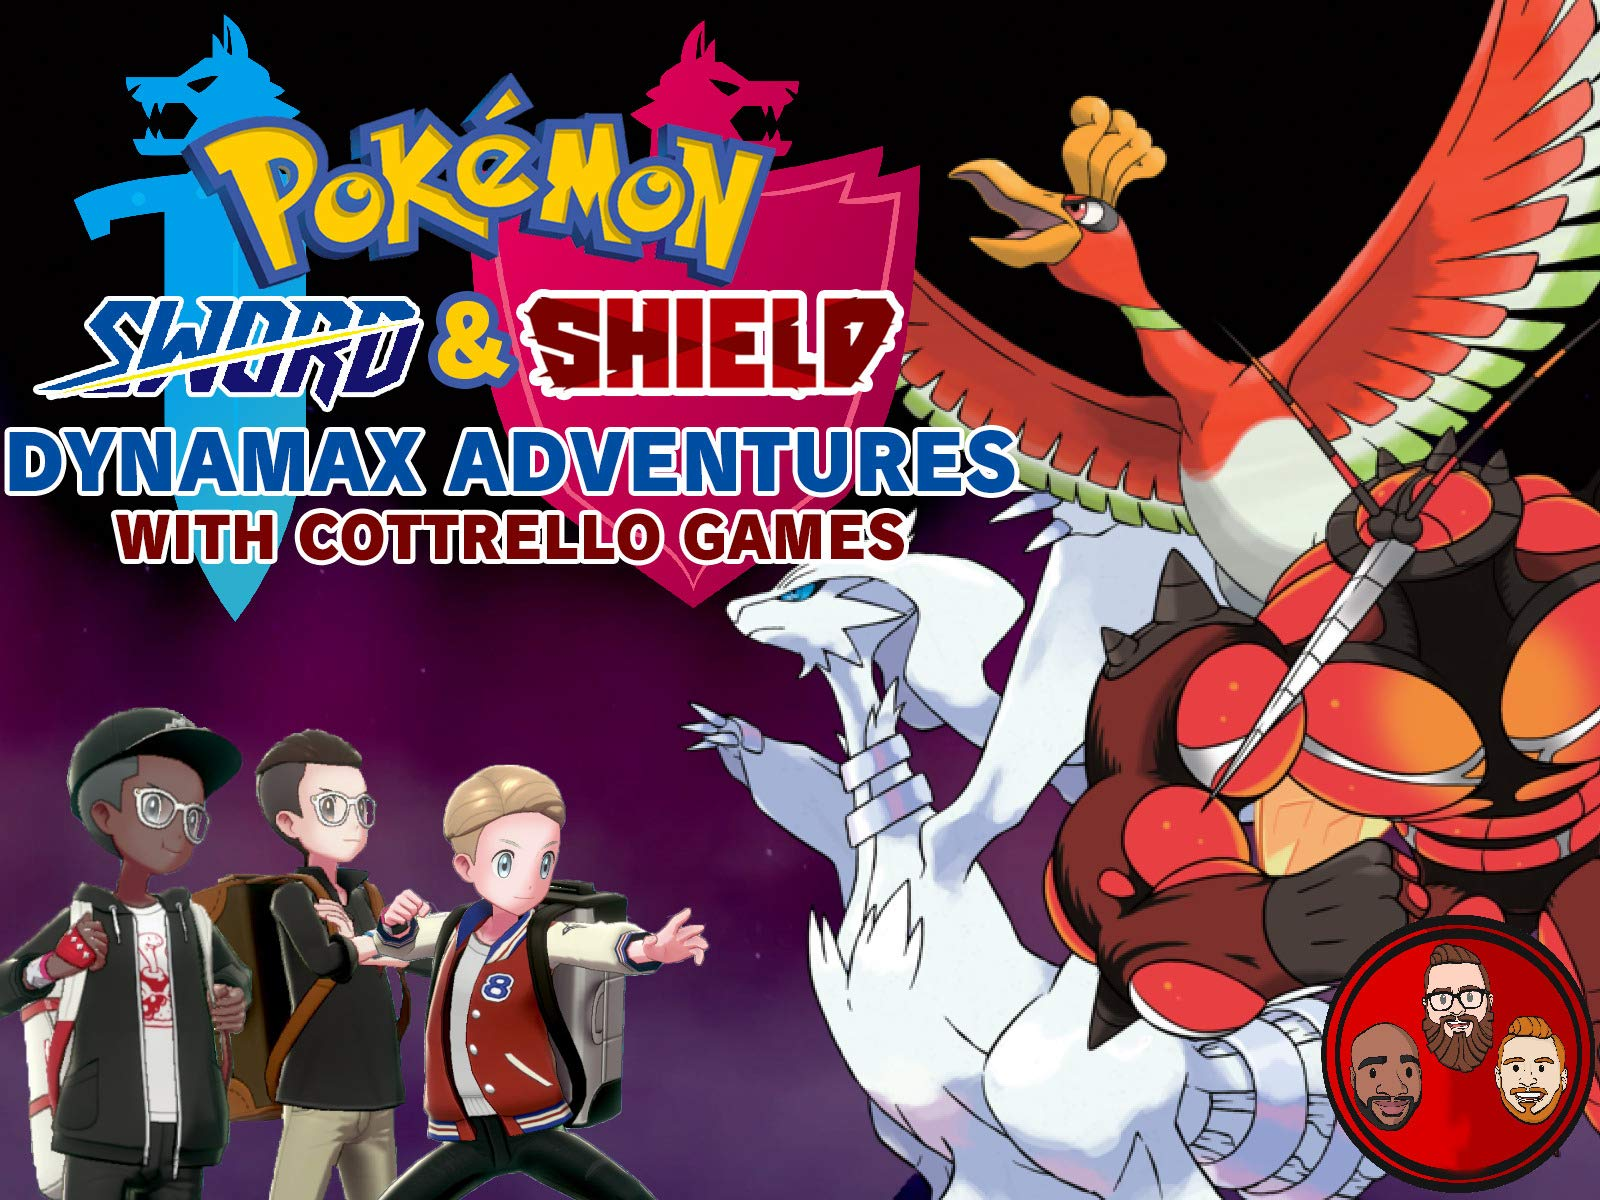 Clip: Pokemon Dynamax Adventures with Cottrello Games